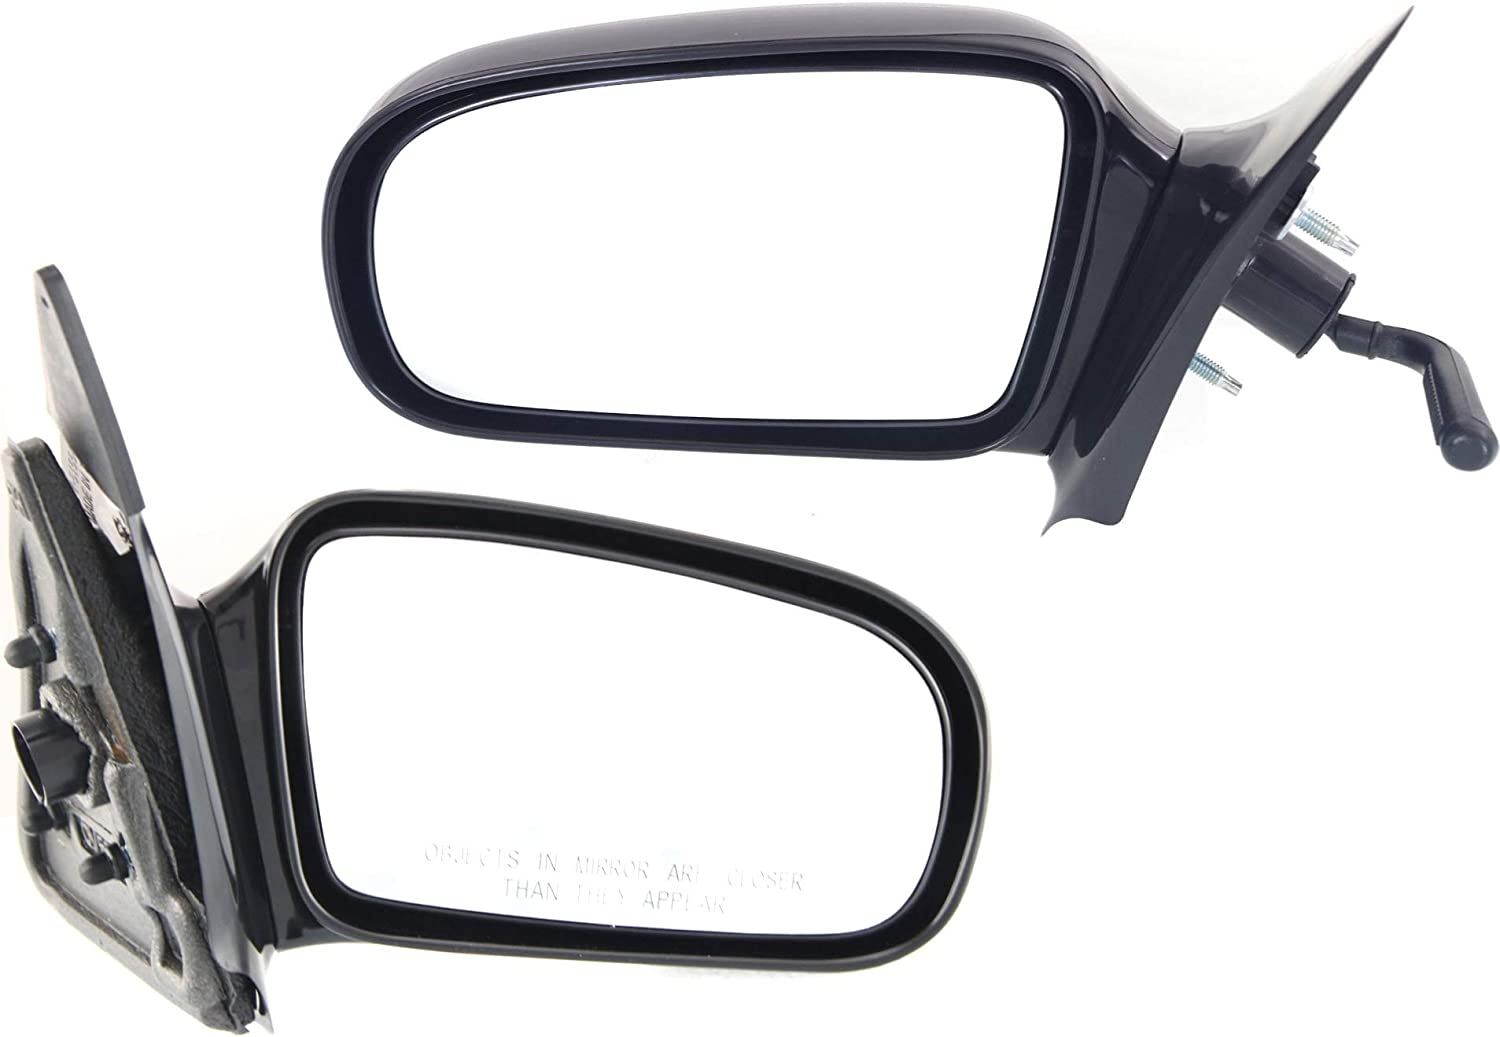 Kool Vue Manual Mirror OFFicial site Remote Chevy Cavalier Sun New item compatible with